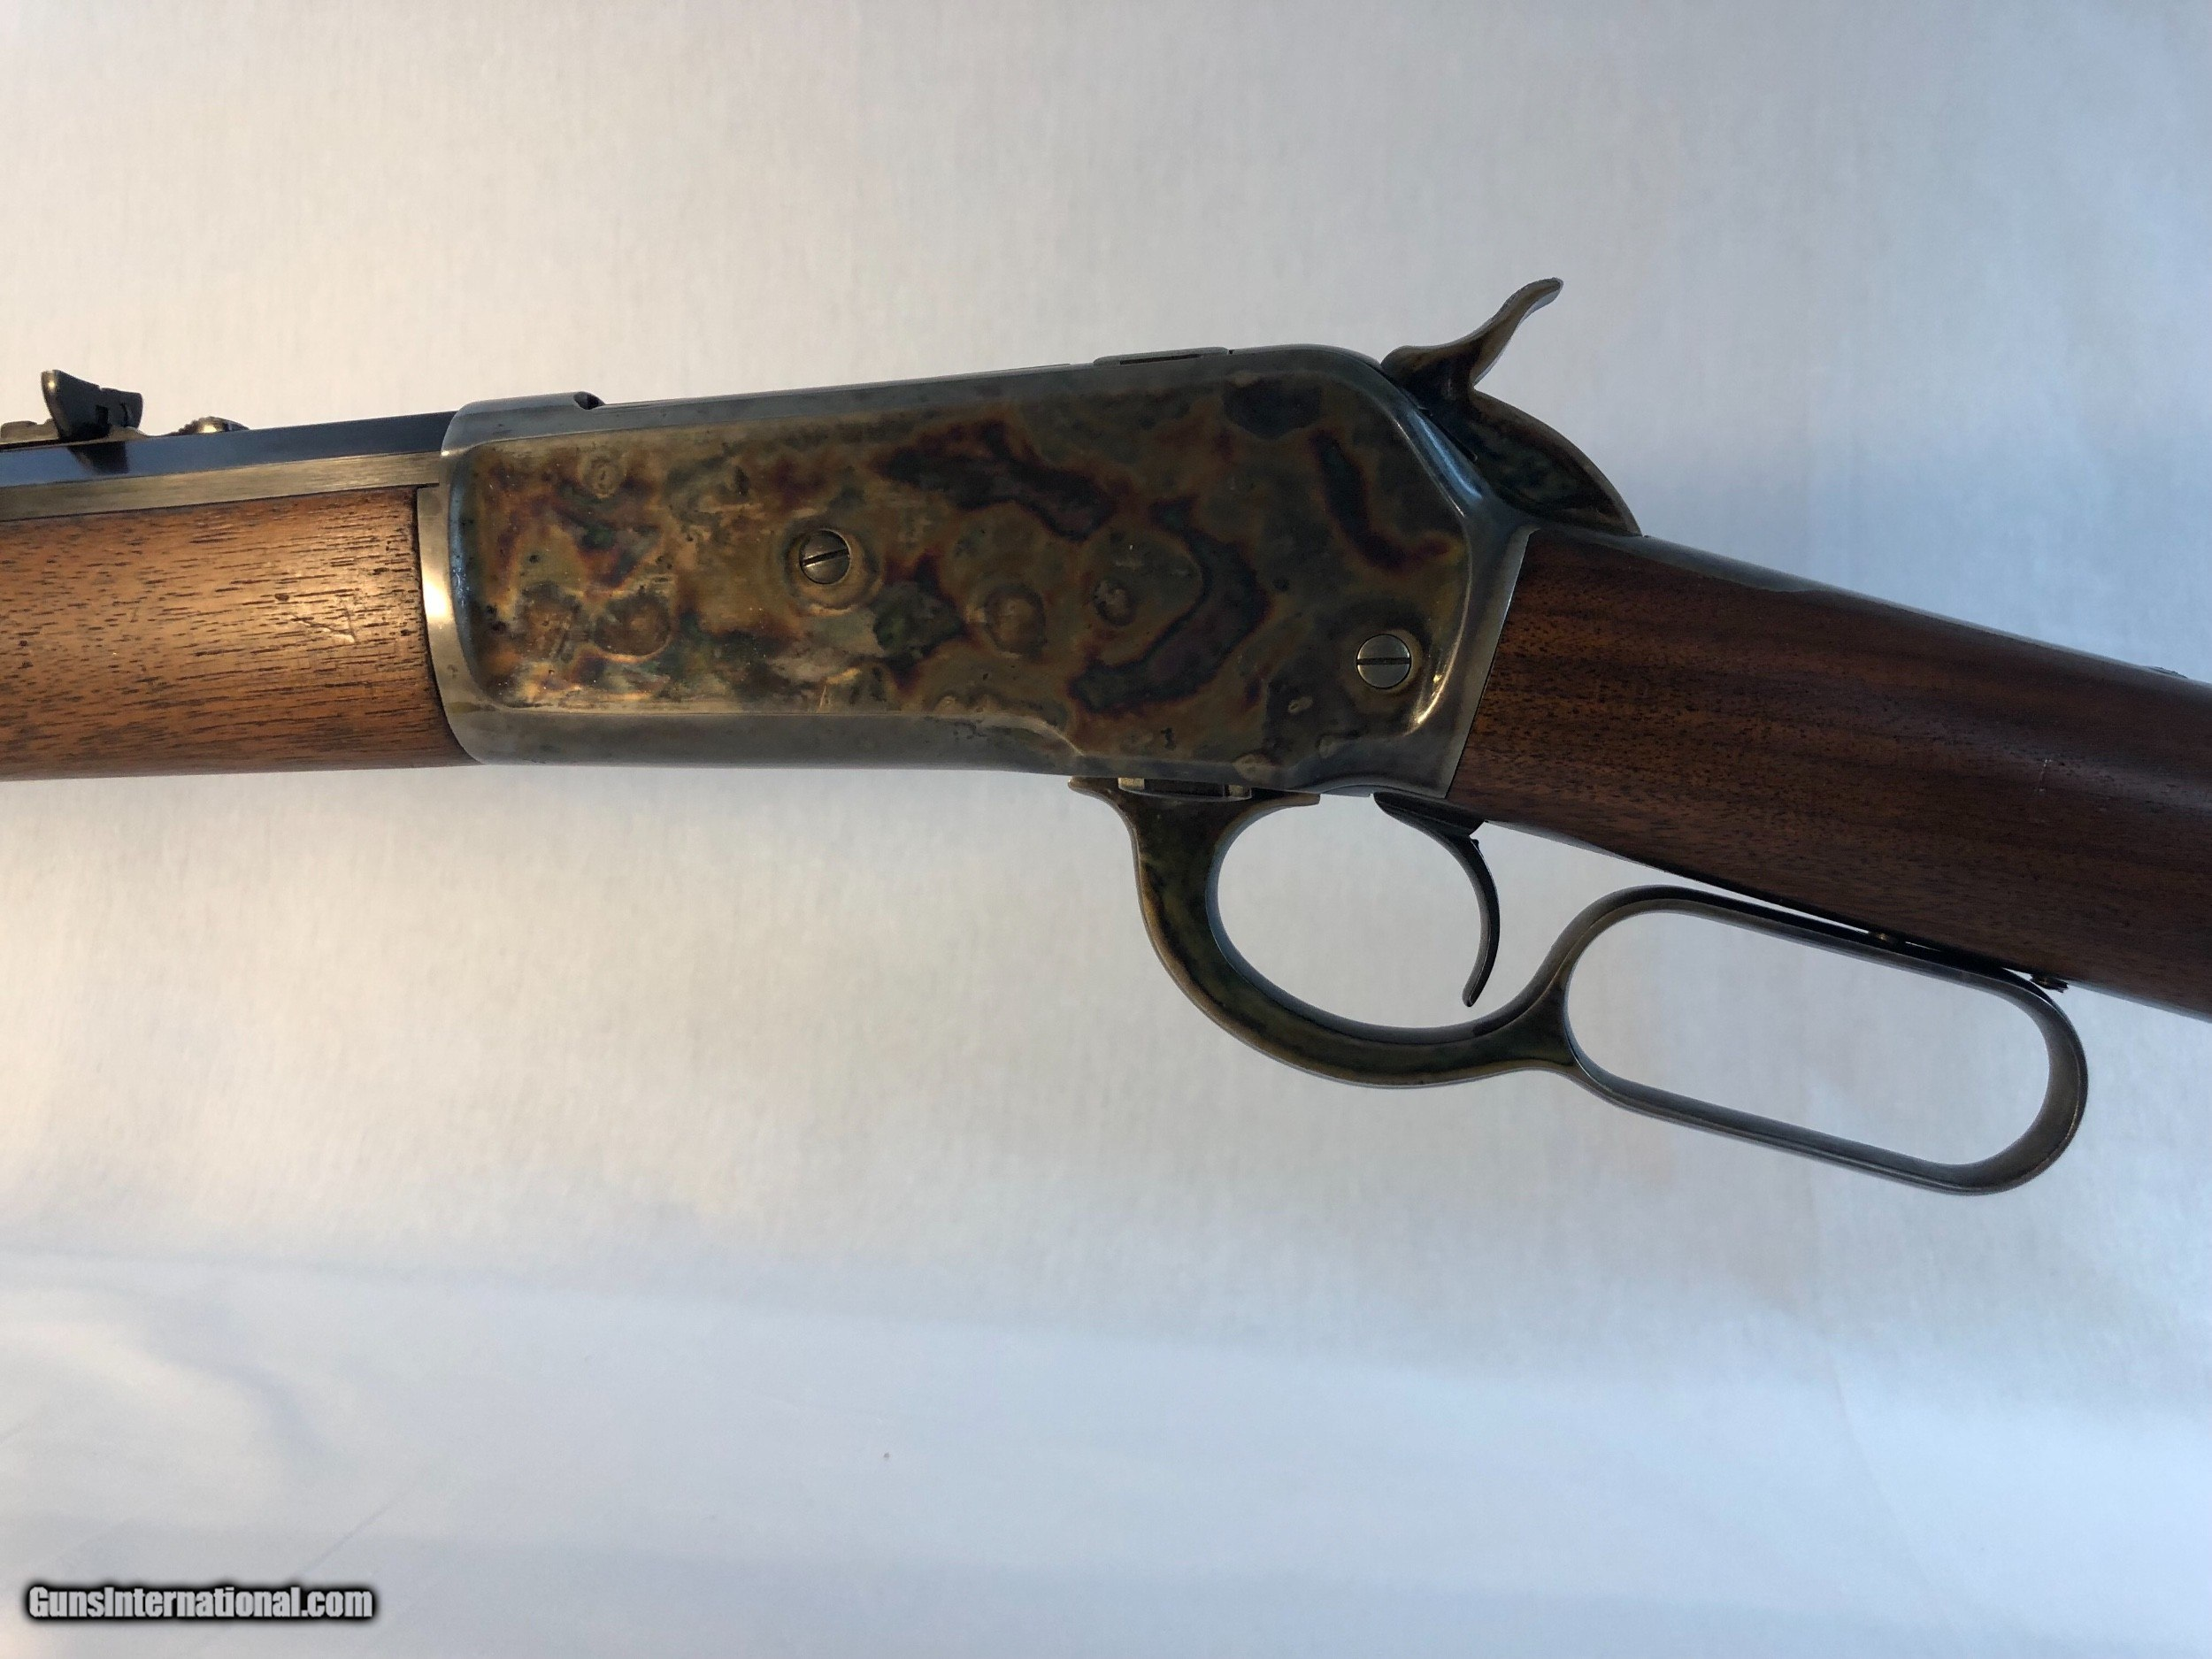 Winchester Model 1886, BIG 50 Rifle, 50 Express for sale